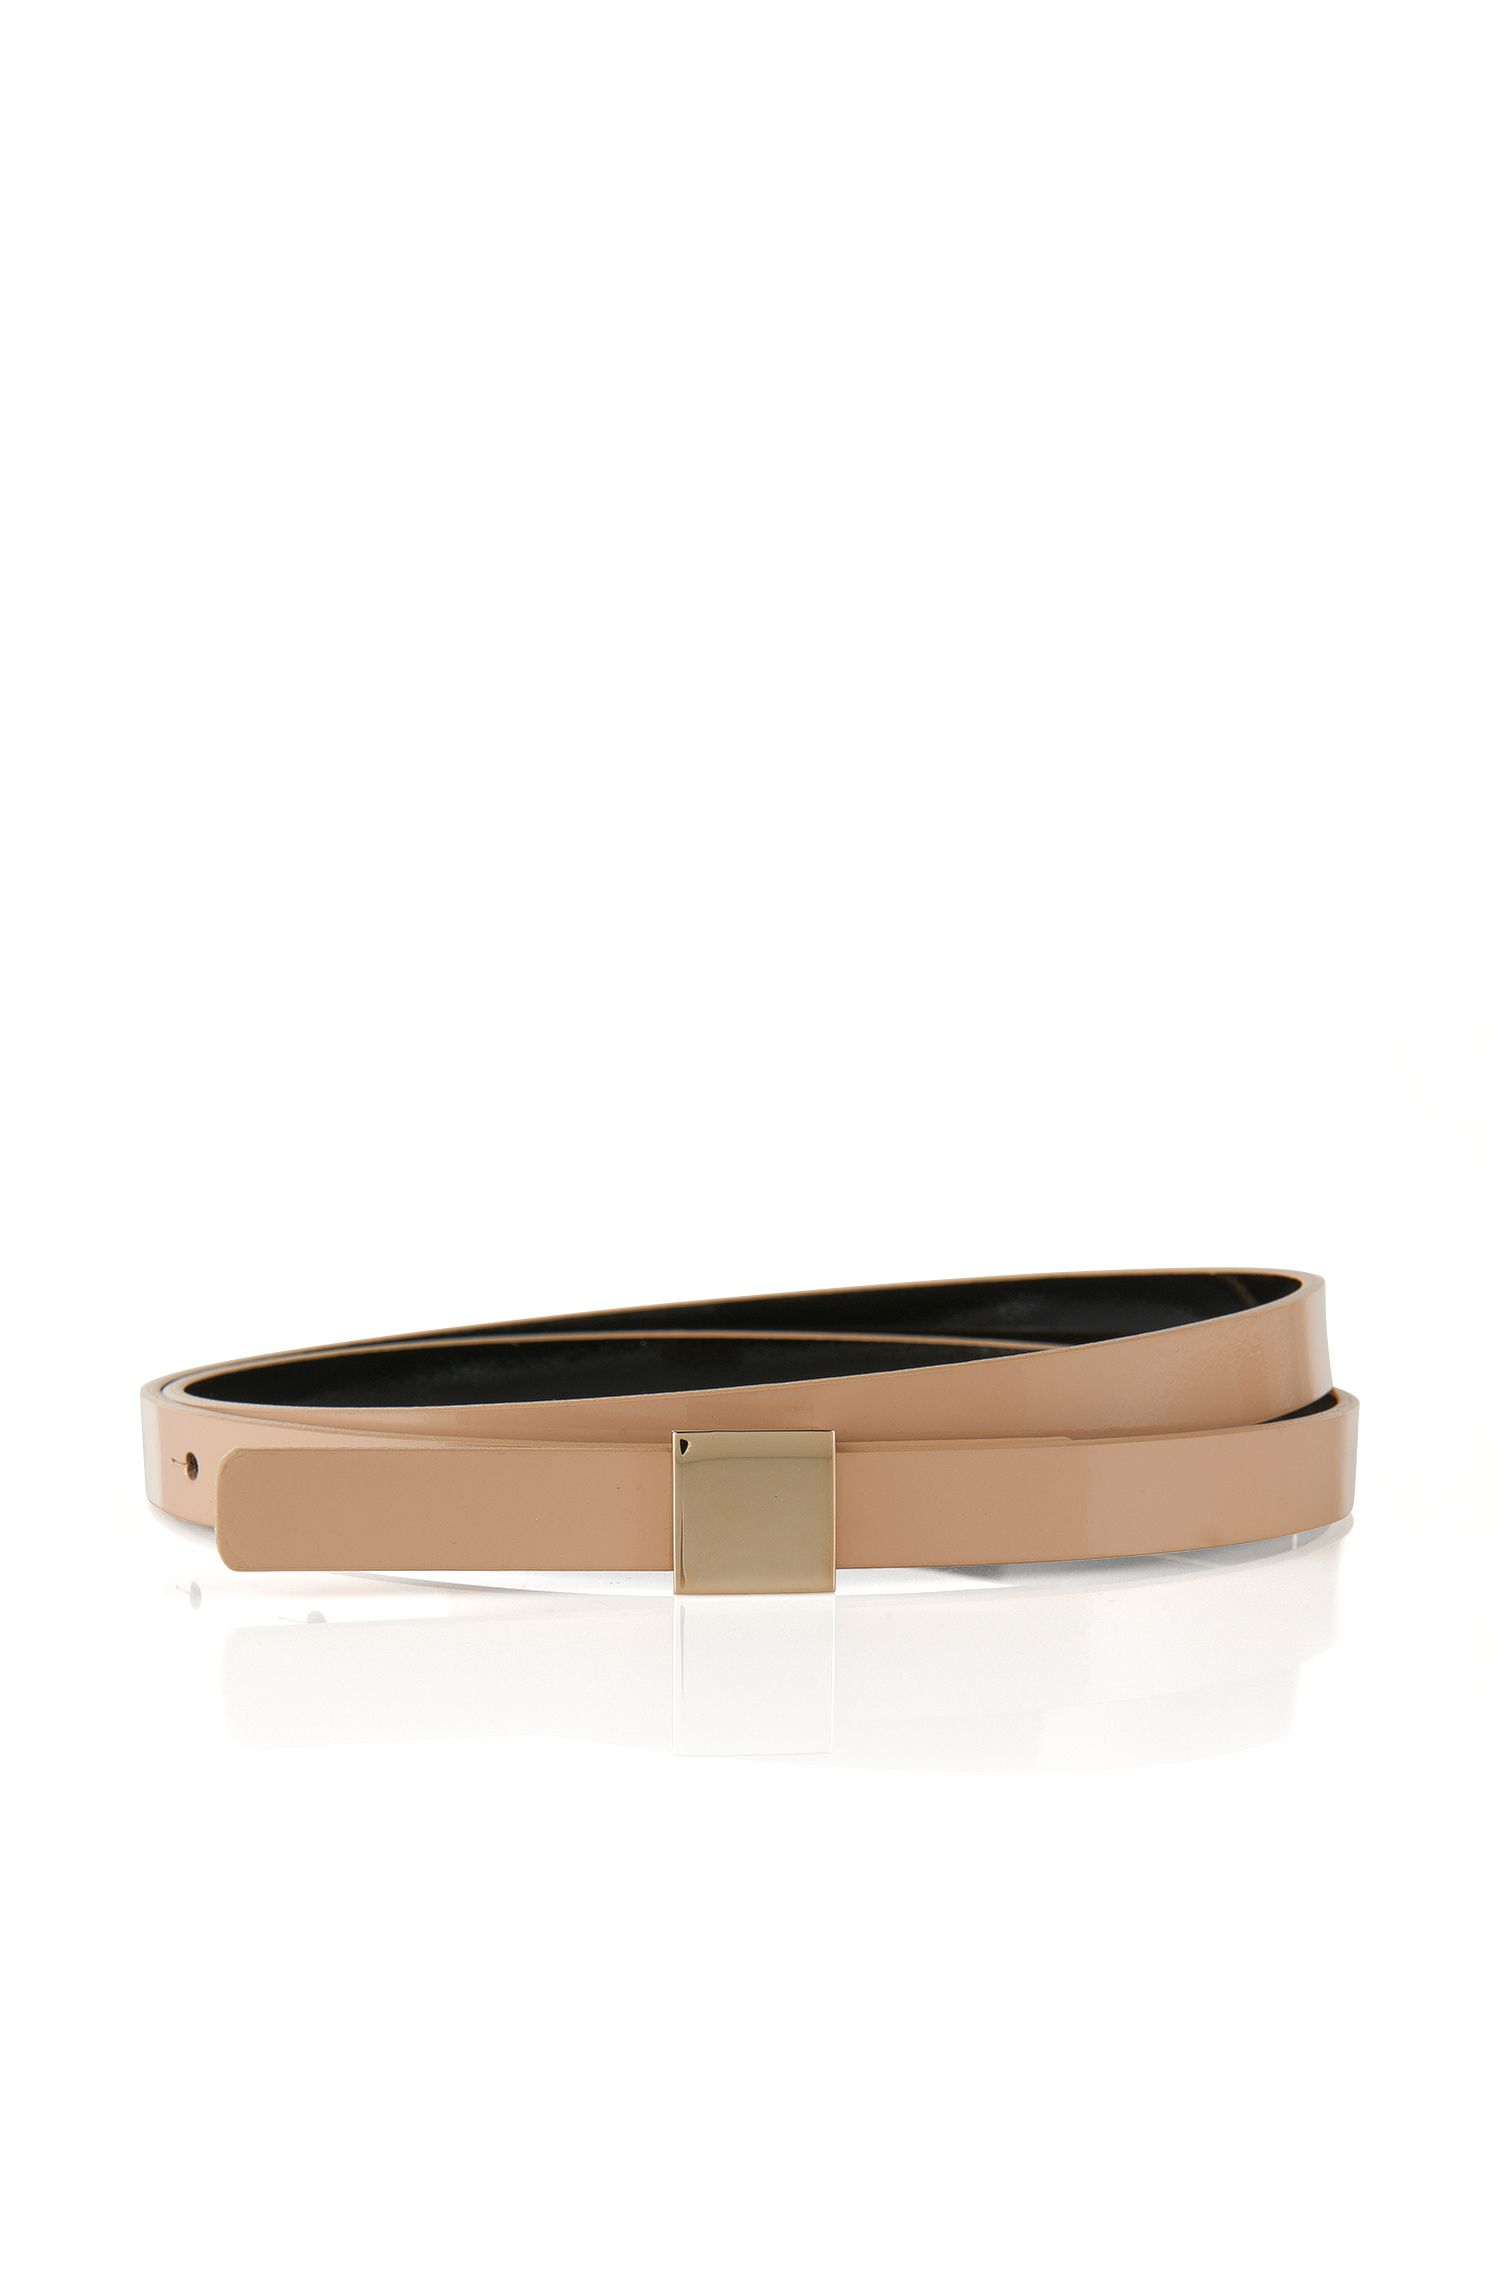 'Bliss-P' | Leather Reversible Plaque Skinny Belt